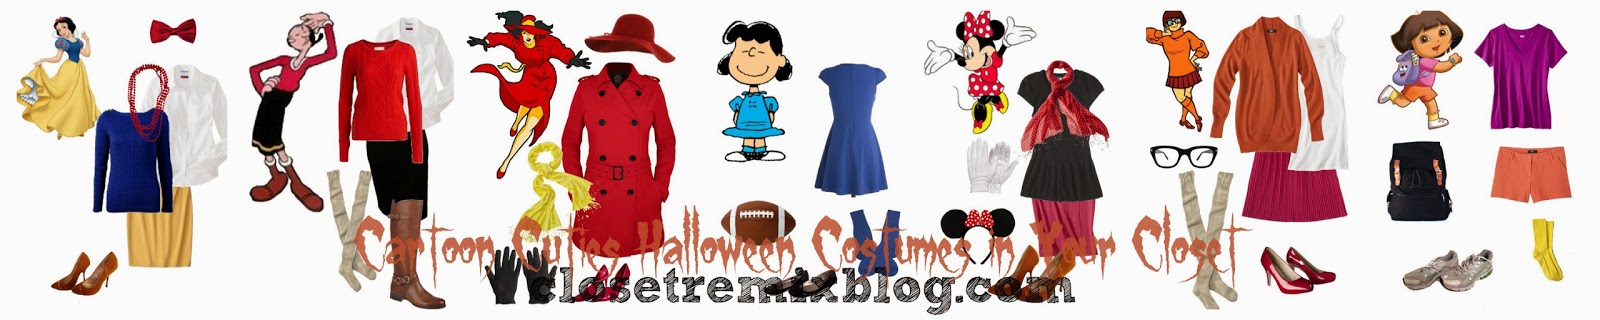 Closet Remix: Remix It! Simple Halloween Costumes in Your Closet